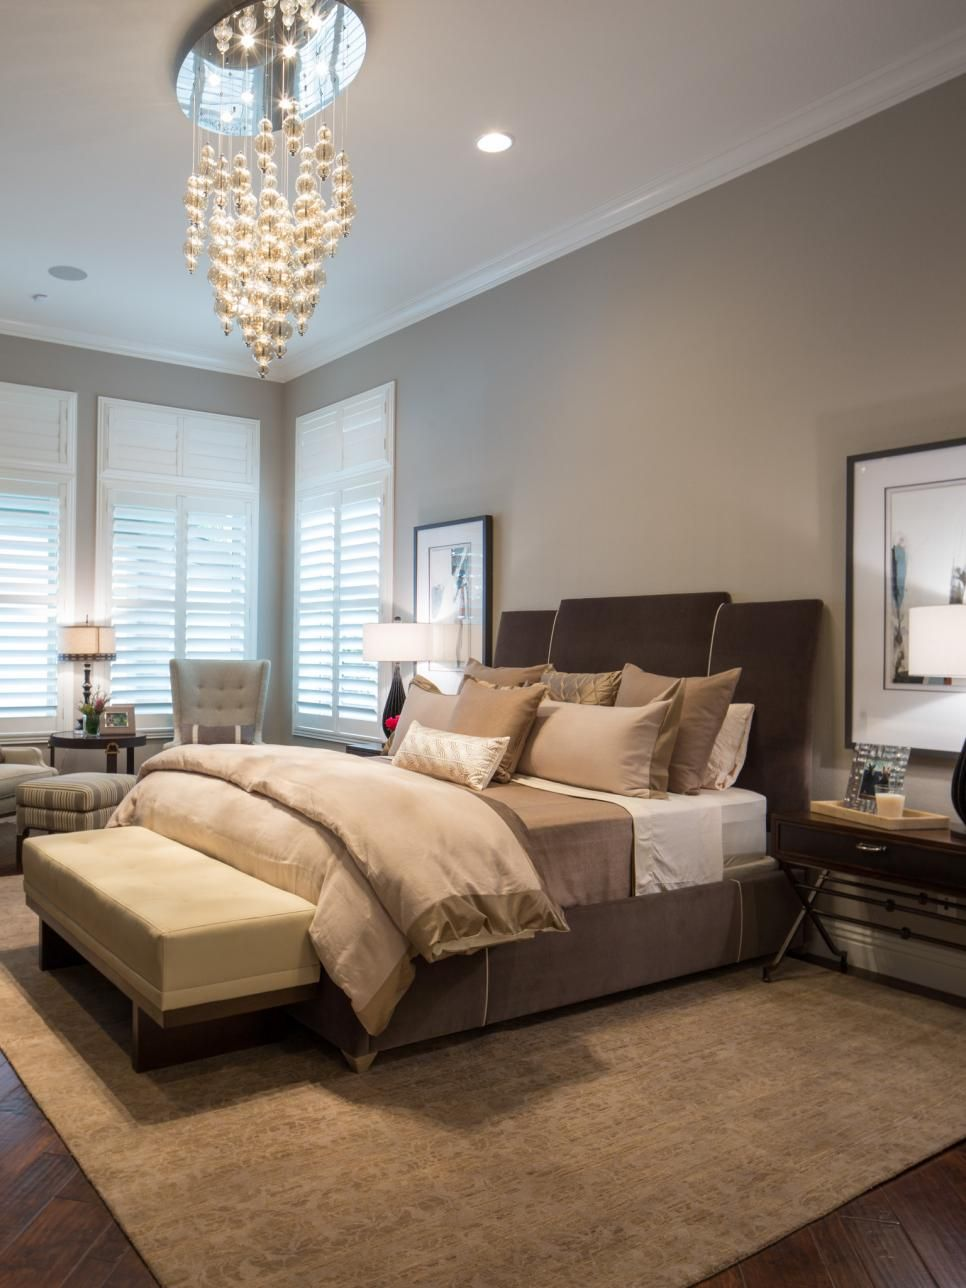 Jonathan Scott's bedroom features a mix of browns, taupes